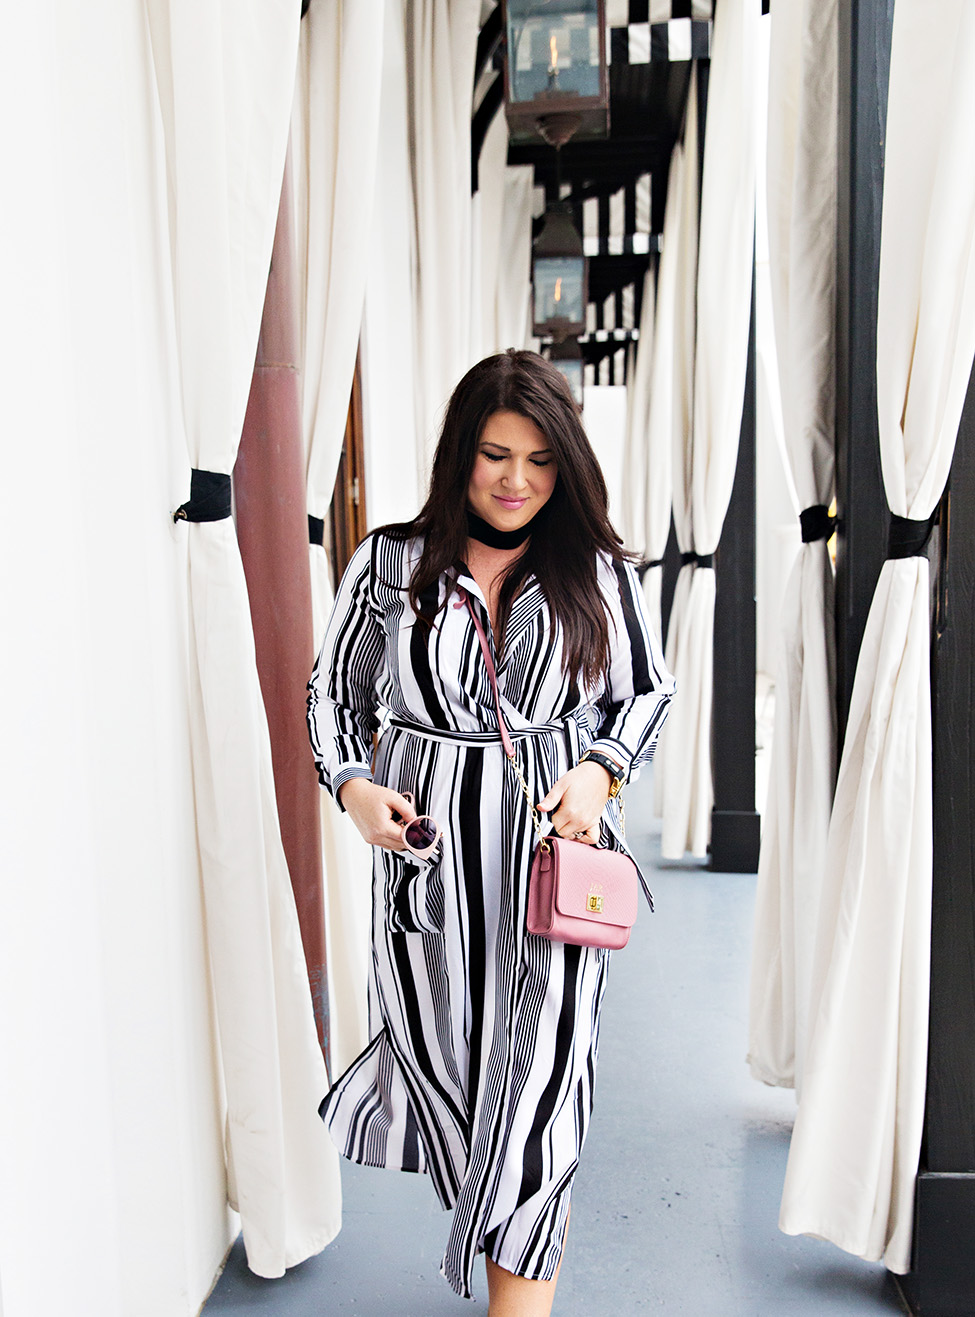 30A Street Style Jami Ray The Pearl Rosemary Beach Black and White Stripes 18